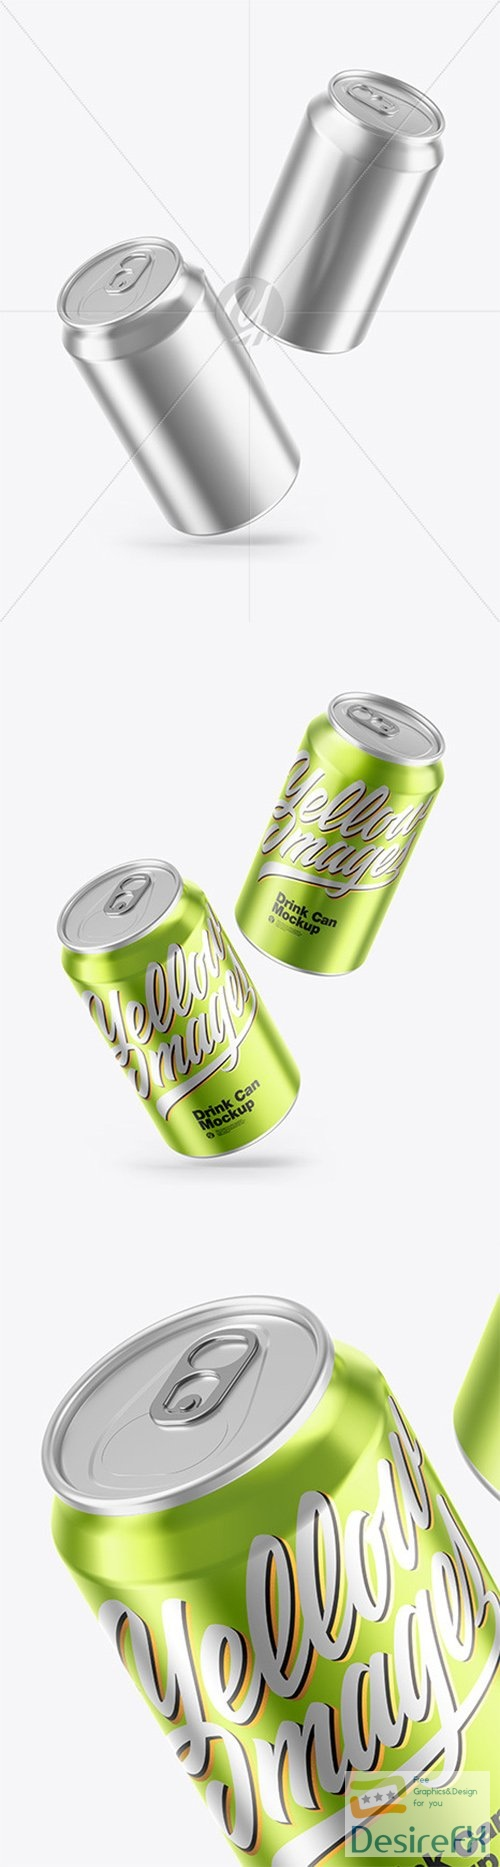 Glossy Metallic Drink Cans Mockup 66564 TIF